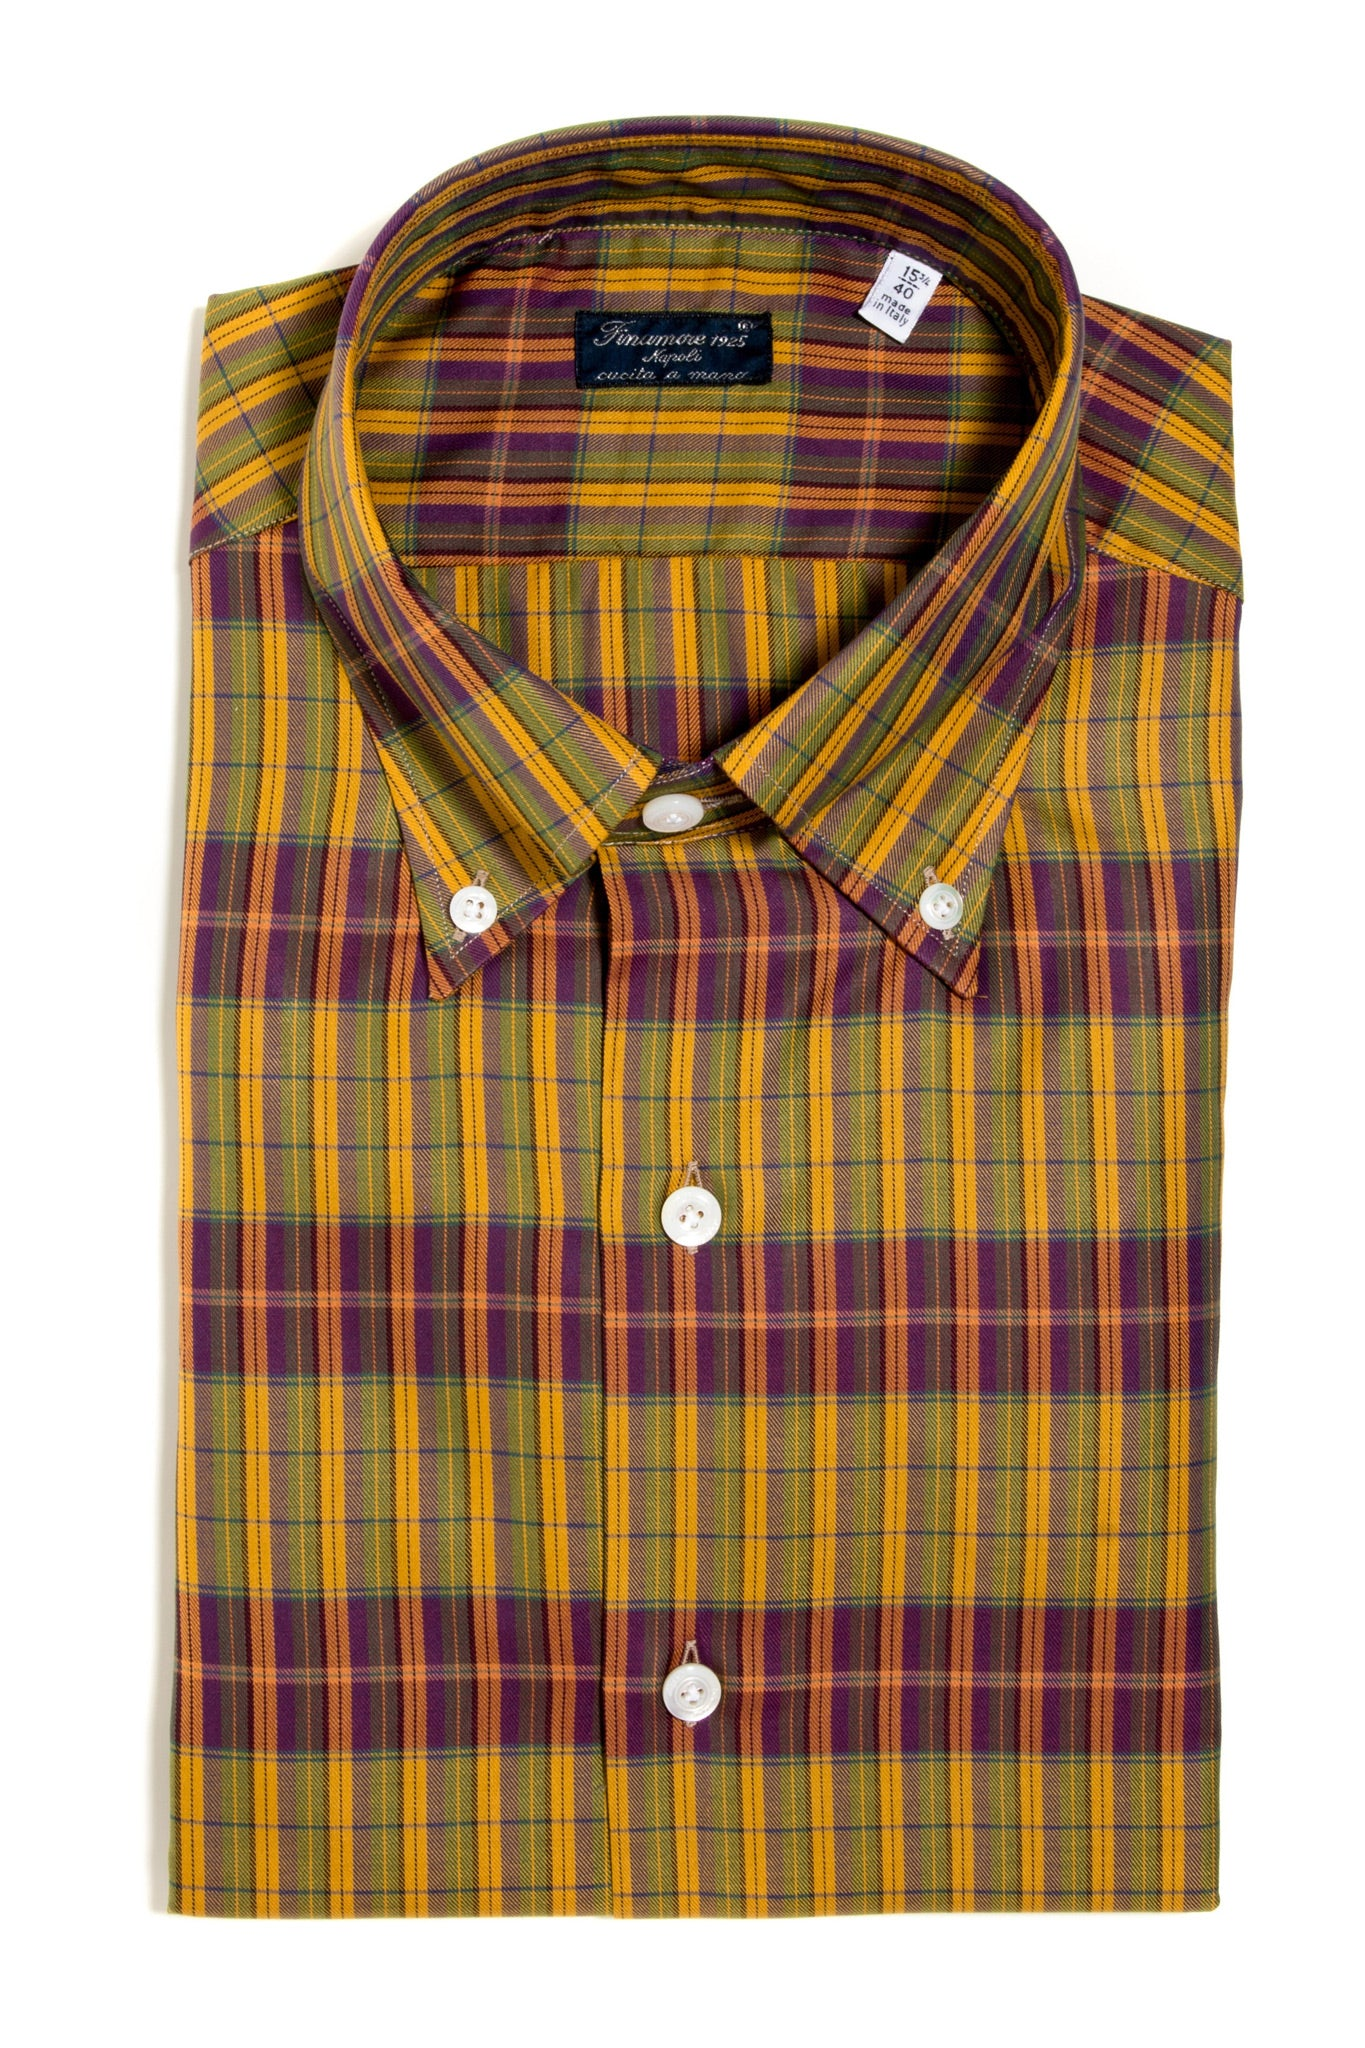 Finamore Manfredi Twill Dress Shirt (147445350424)